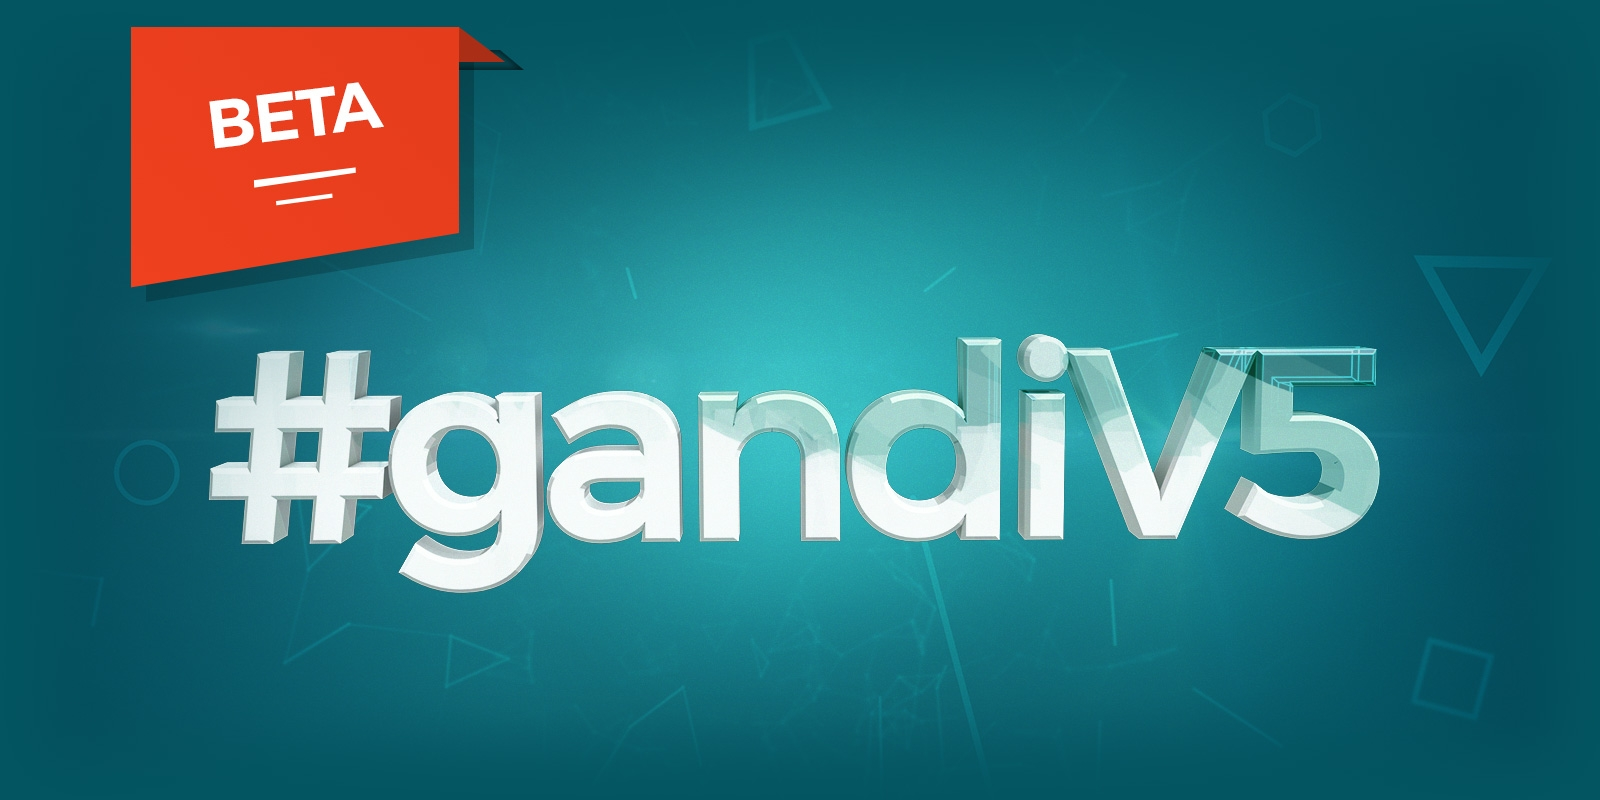 Where we're at with #gandiv5